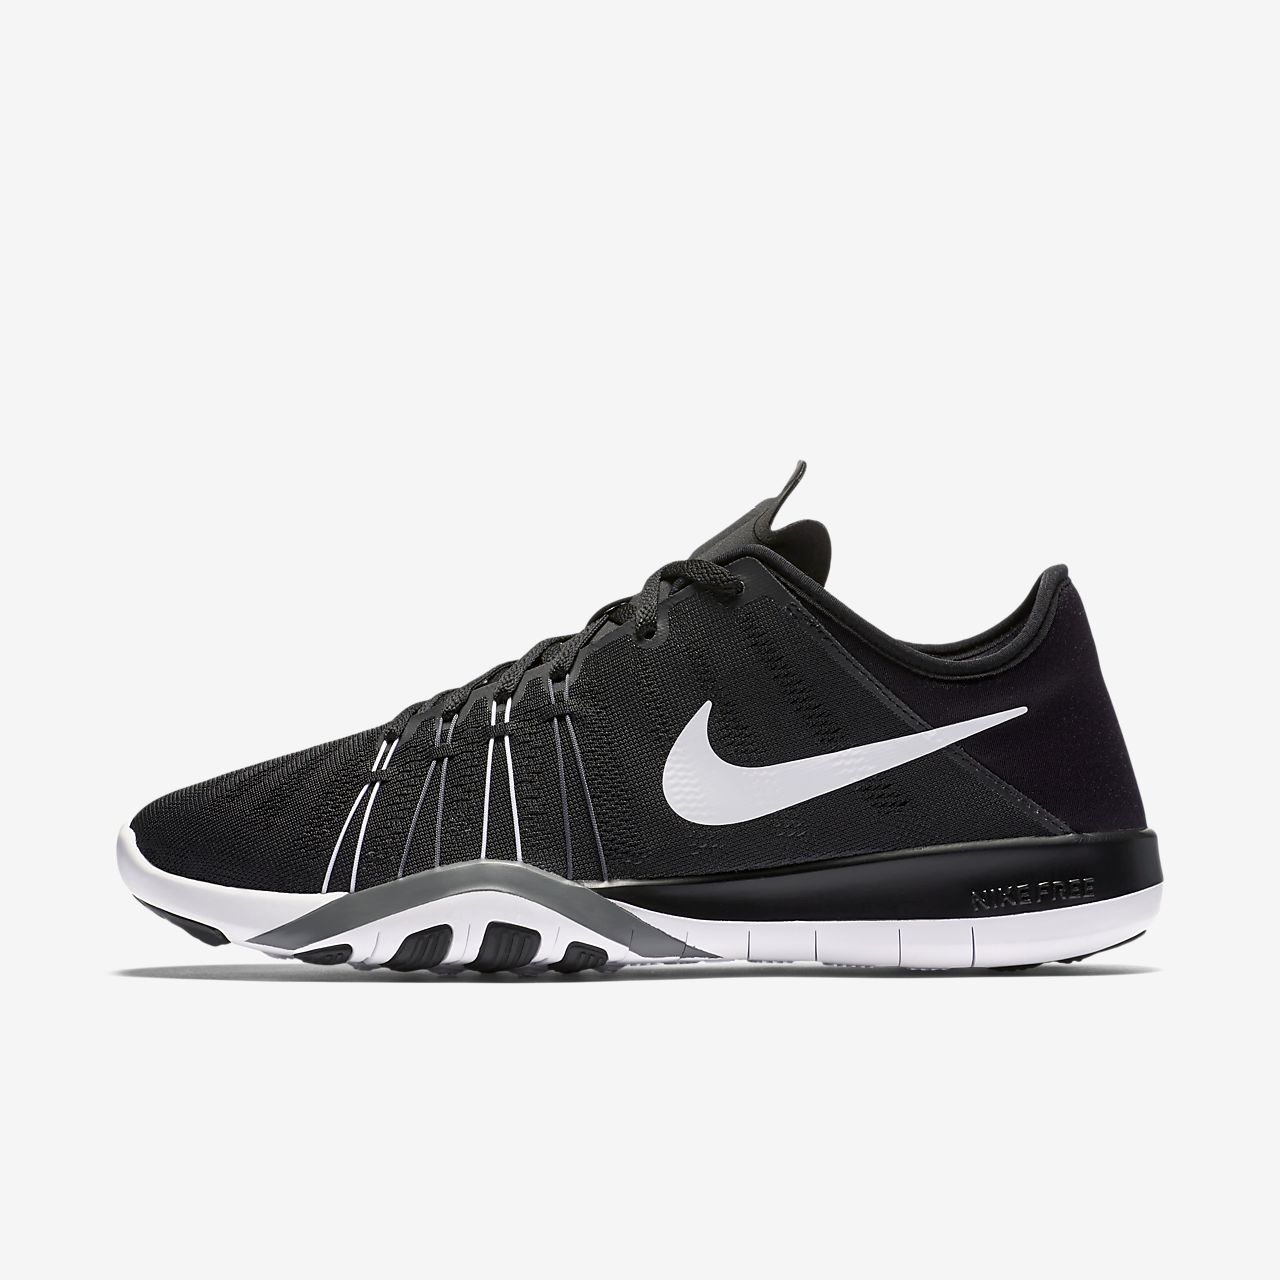 Wmns Nike Free TR 6 VI Black White Womens Training Shoes Trainers 833413001